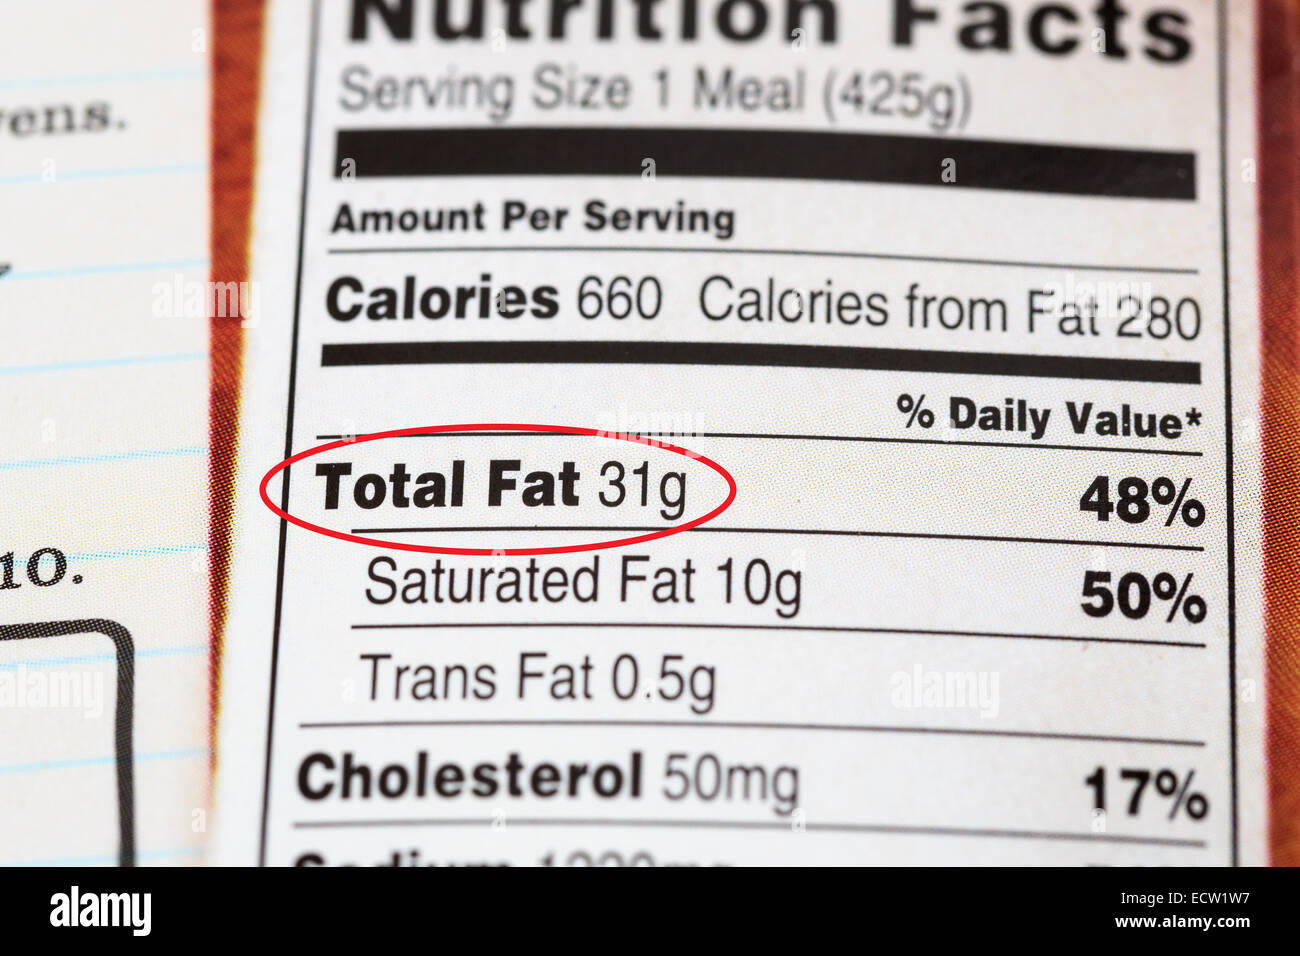 A package from a prepared meal with nutrition information indicating a high fat content Stock Photo